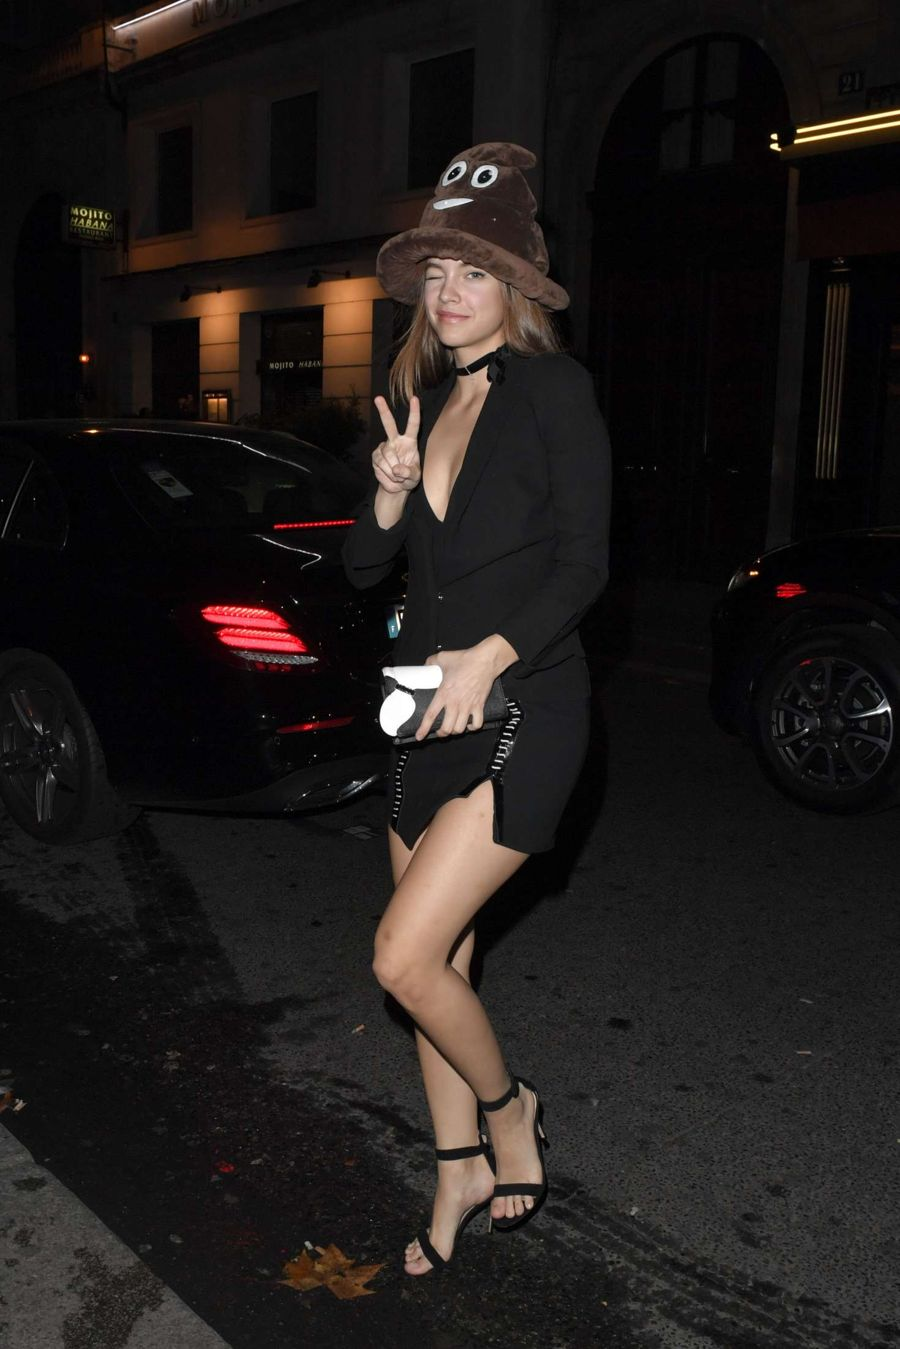 Barbara Palvin at night club in Paris